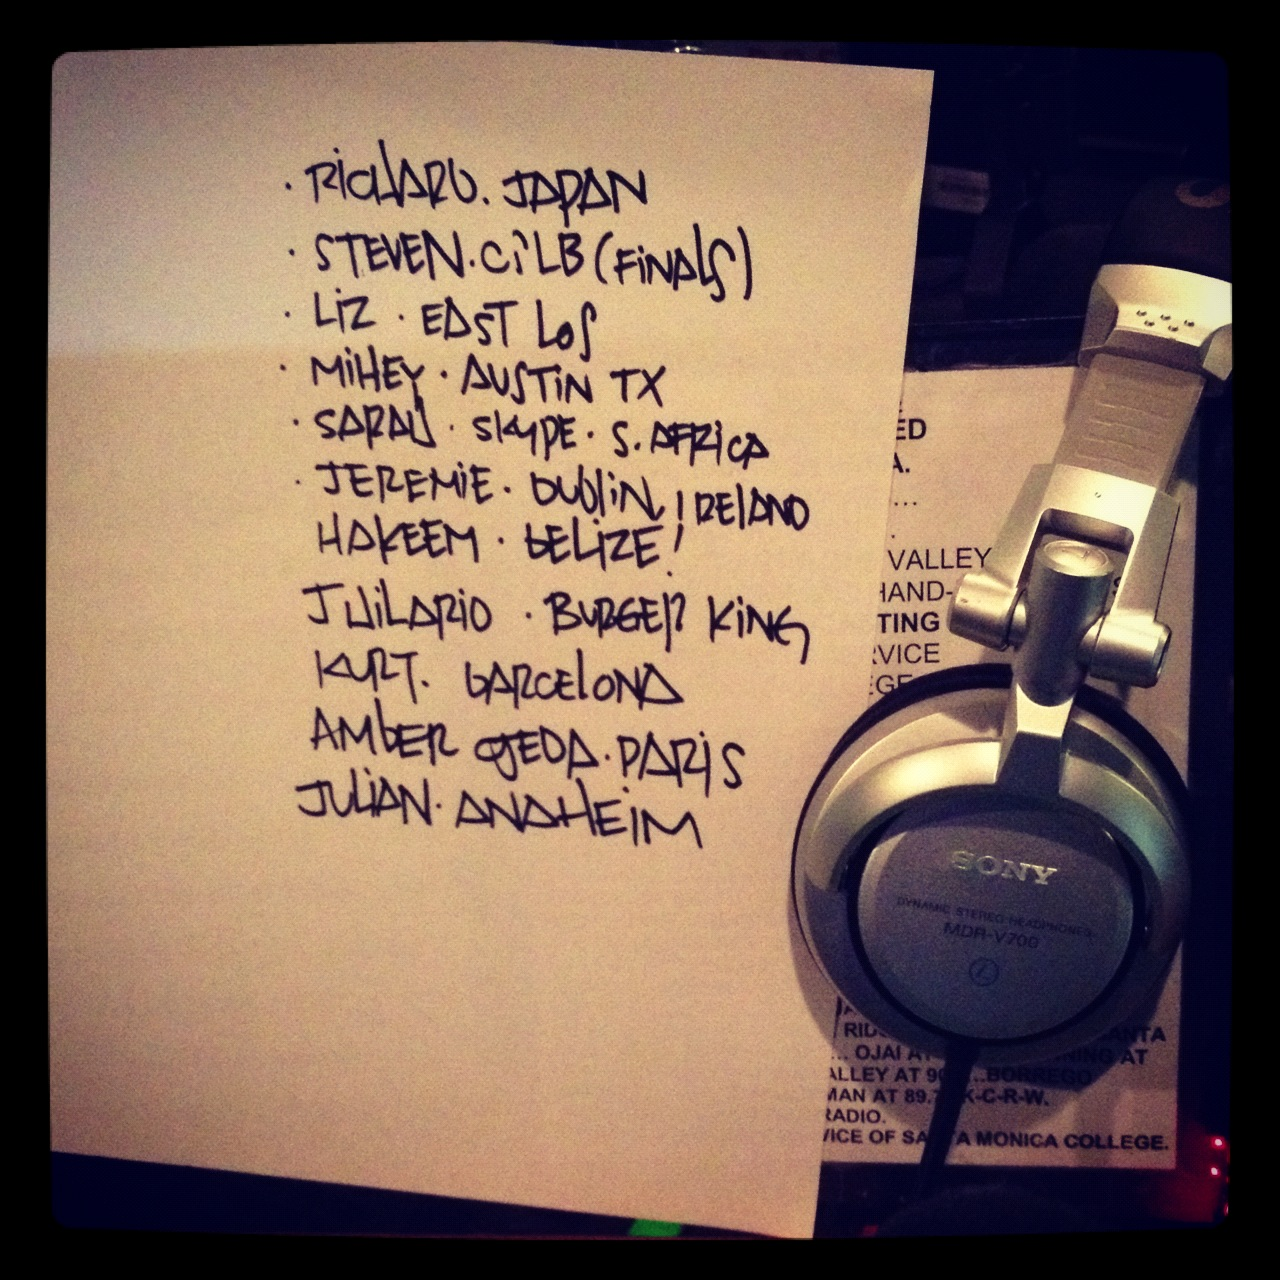 KCRW PLAYLIST | 15 MAY 2012